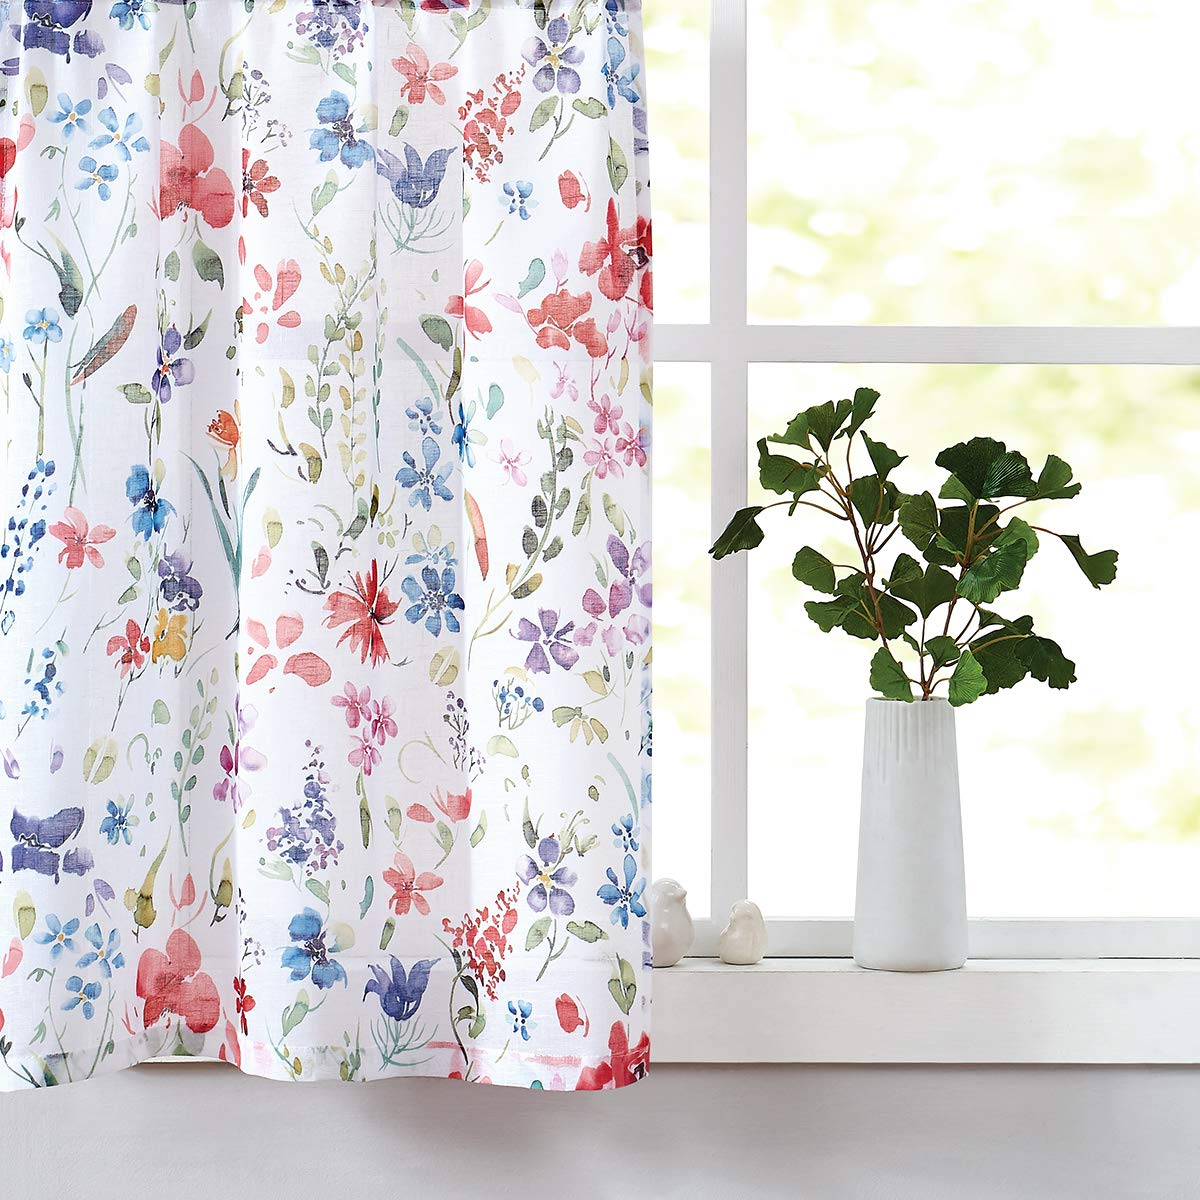 """Fragrantex Floral Print Kitchen Curtains 24"""" Multi Color Sheer Tier Curtain Set For Windows Linen Cotton Like Curtain Panels For Laundry Room Tiers With Recent Floral Watercolor Semi Sheer Rod Pocket Kitchen Curtain Valance And Tiers Sets (View 5 of 20)"""